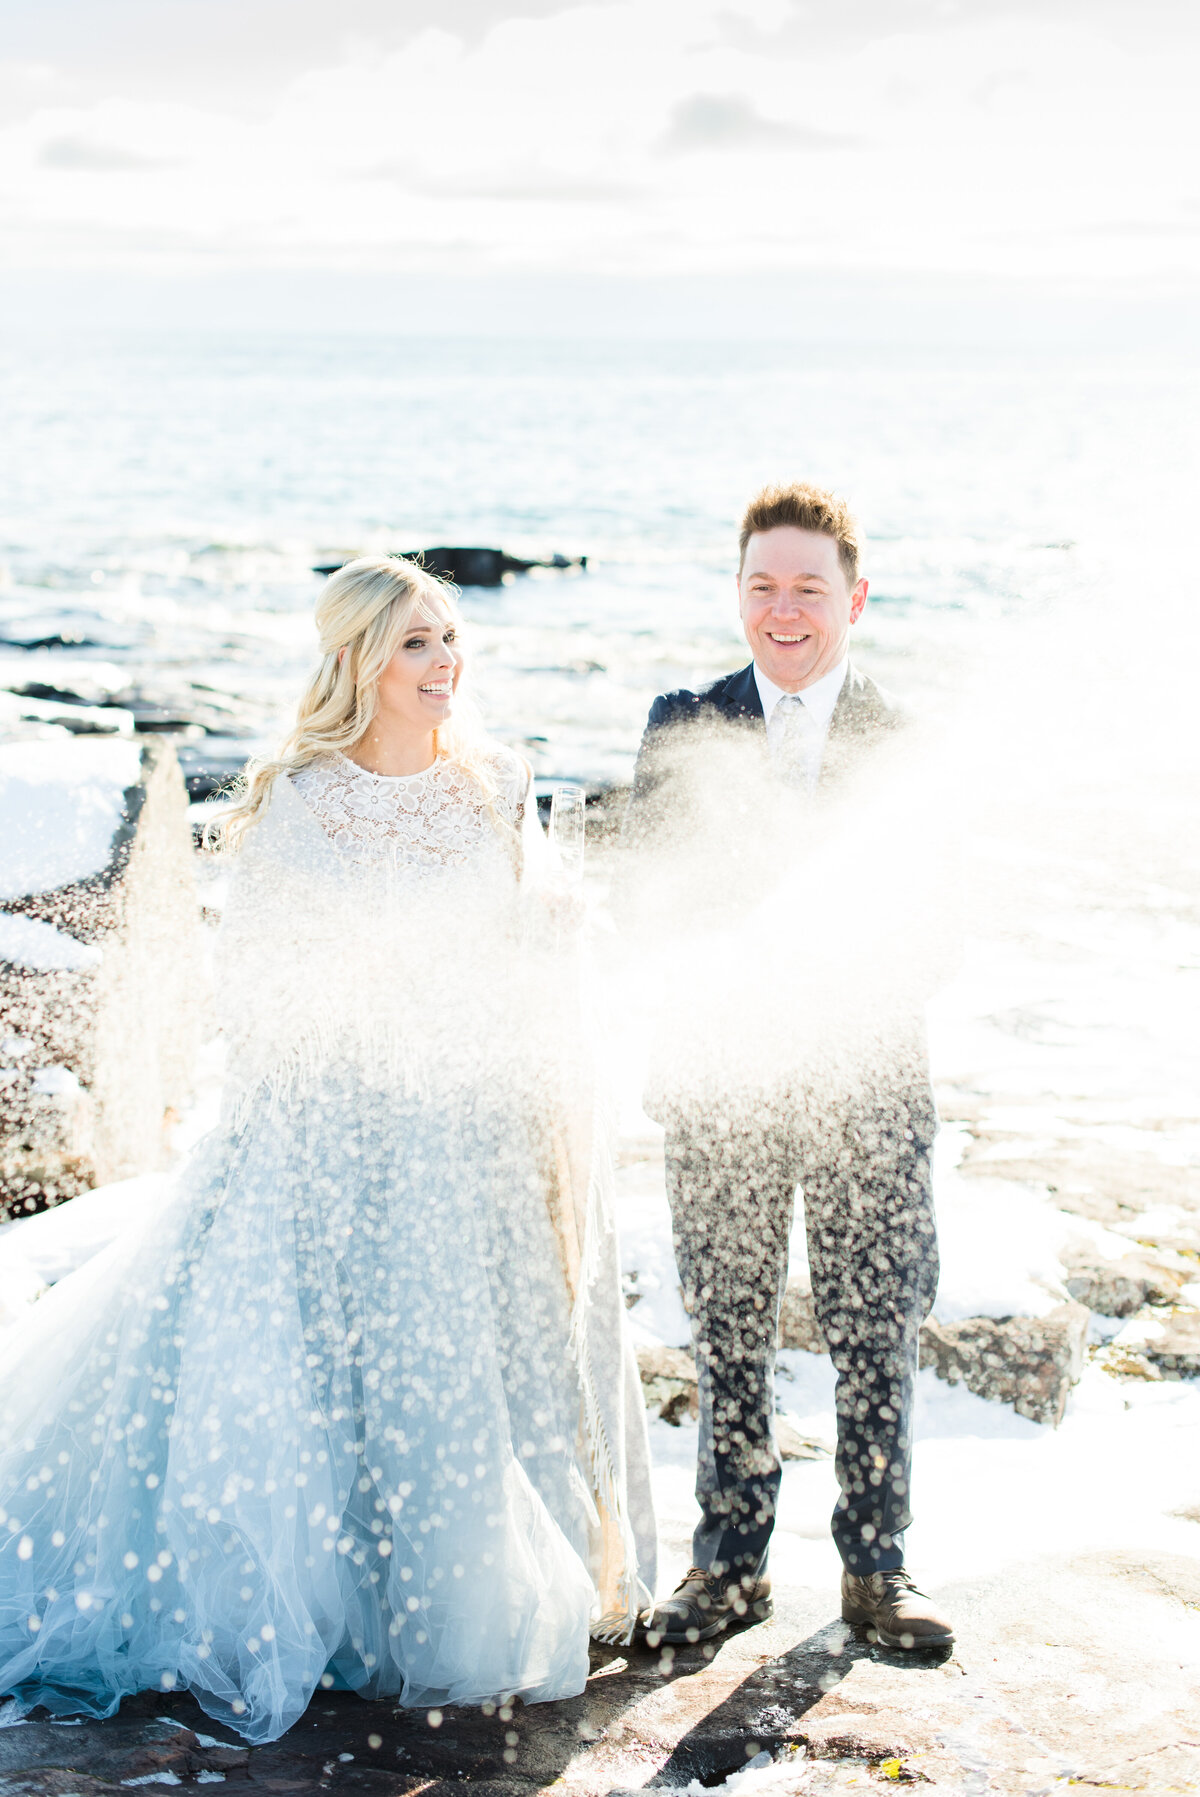 A bride and groom pop a bottle of champagne during their winter wedding in Thunder Bay